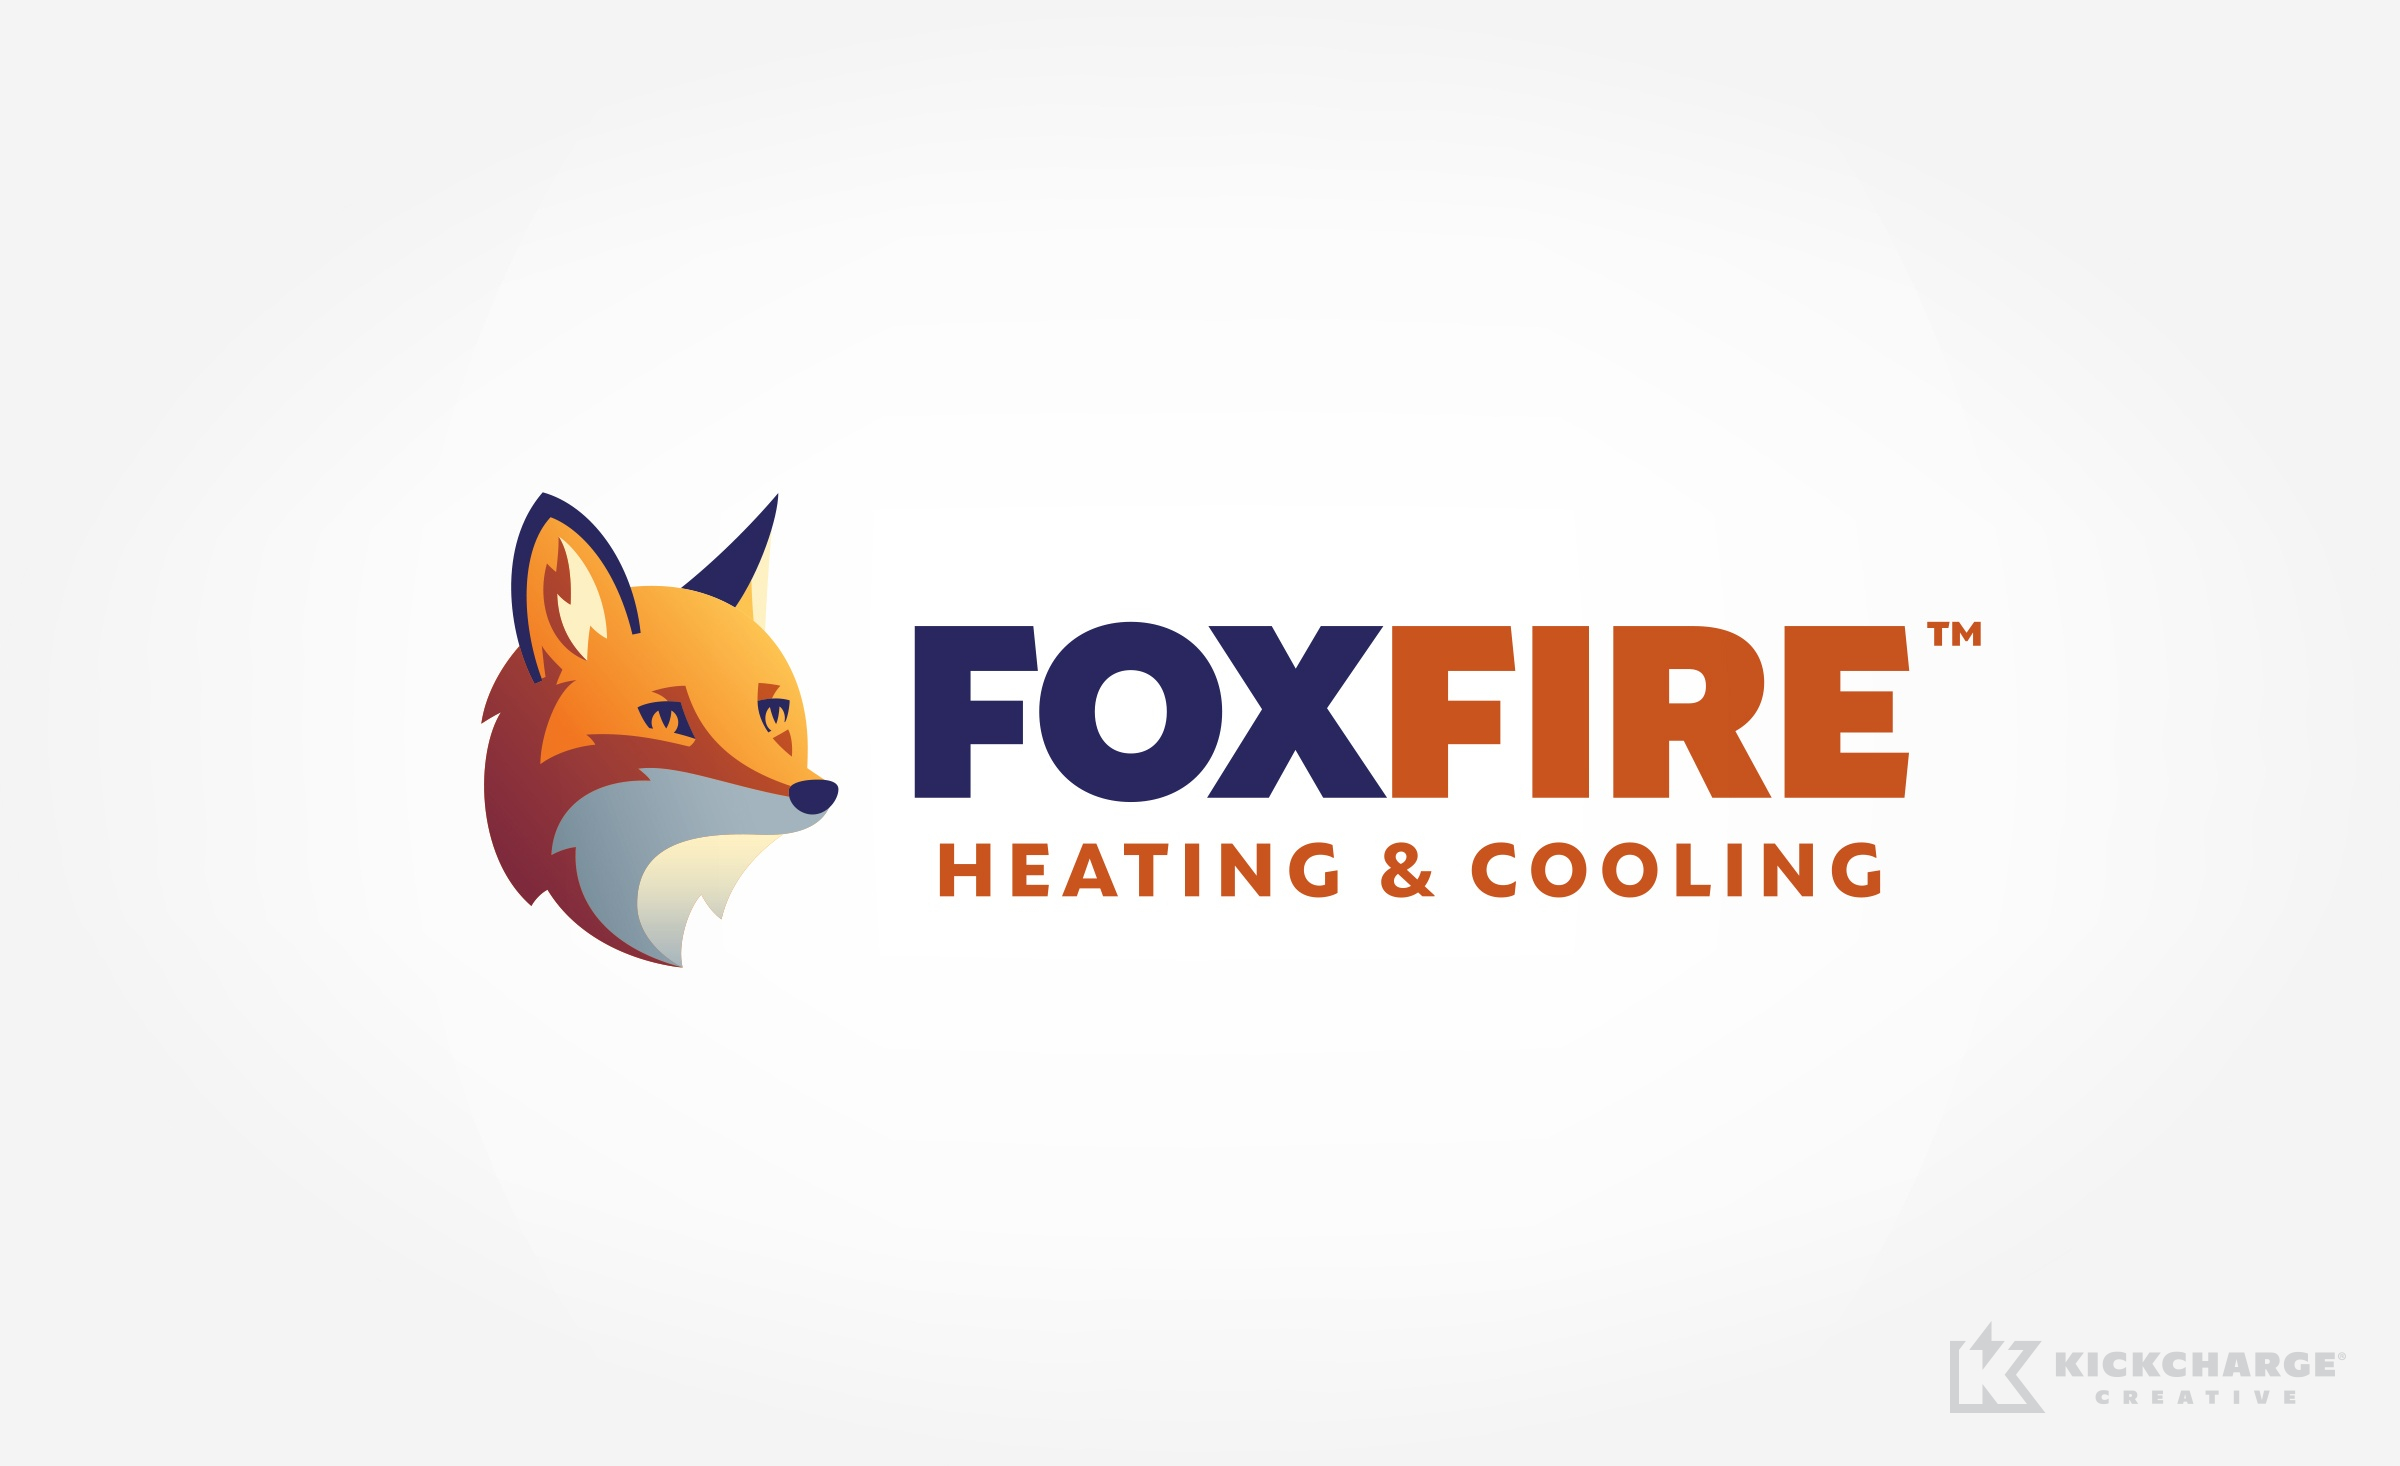 hvac logo for FoxFire Heating & Cooling